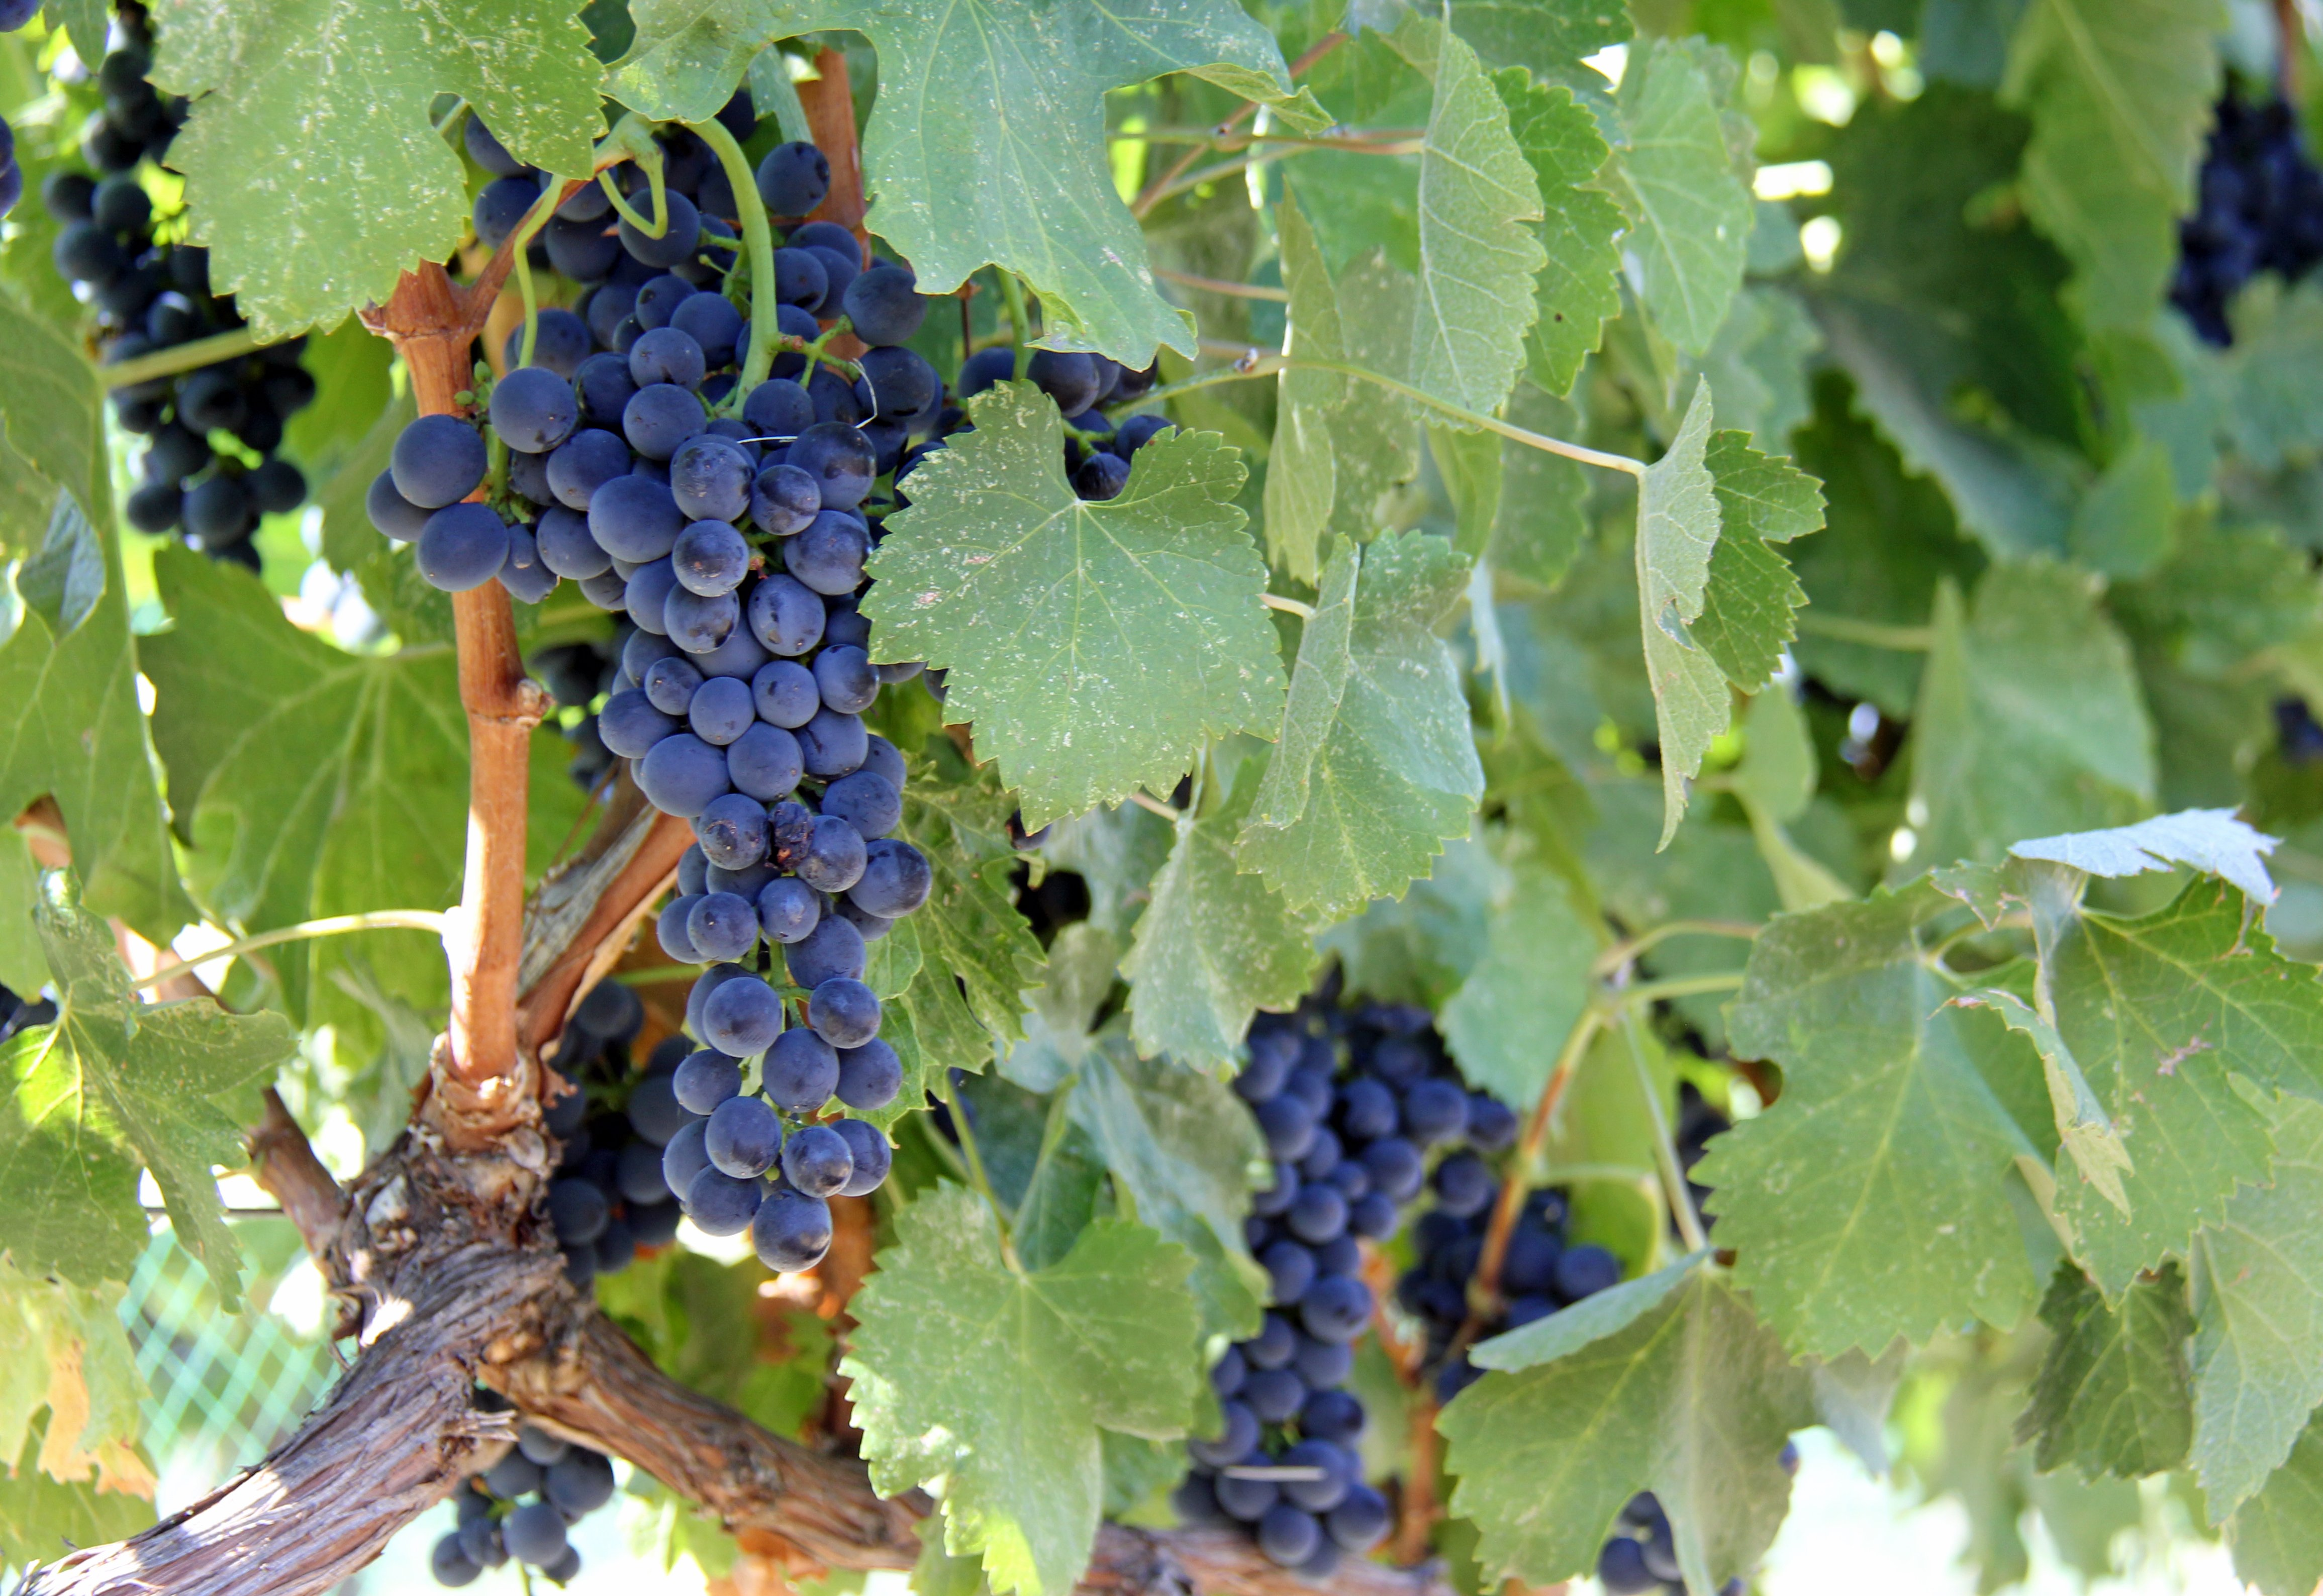 Grapes in the Umiker Vineyard in Lewiston, Idaho